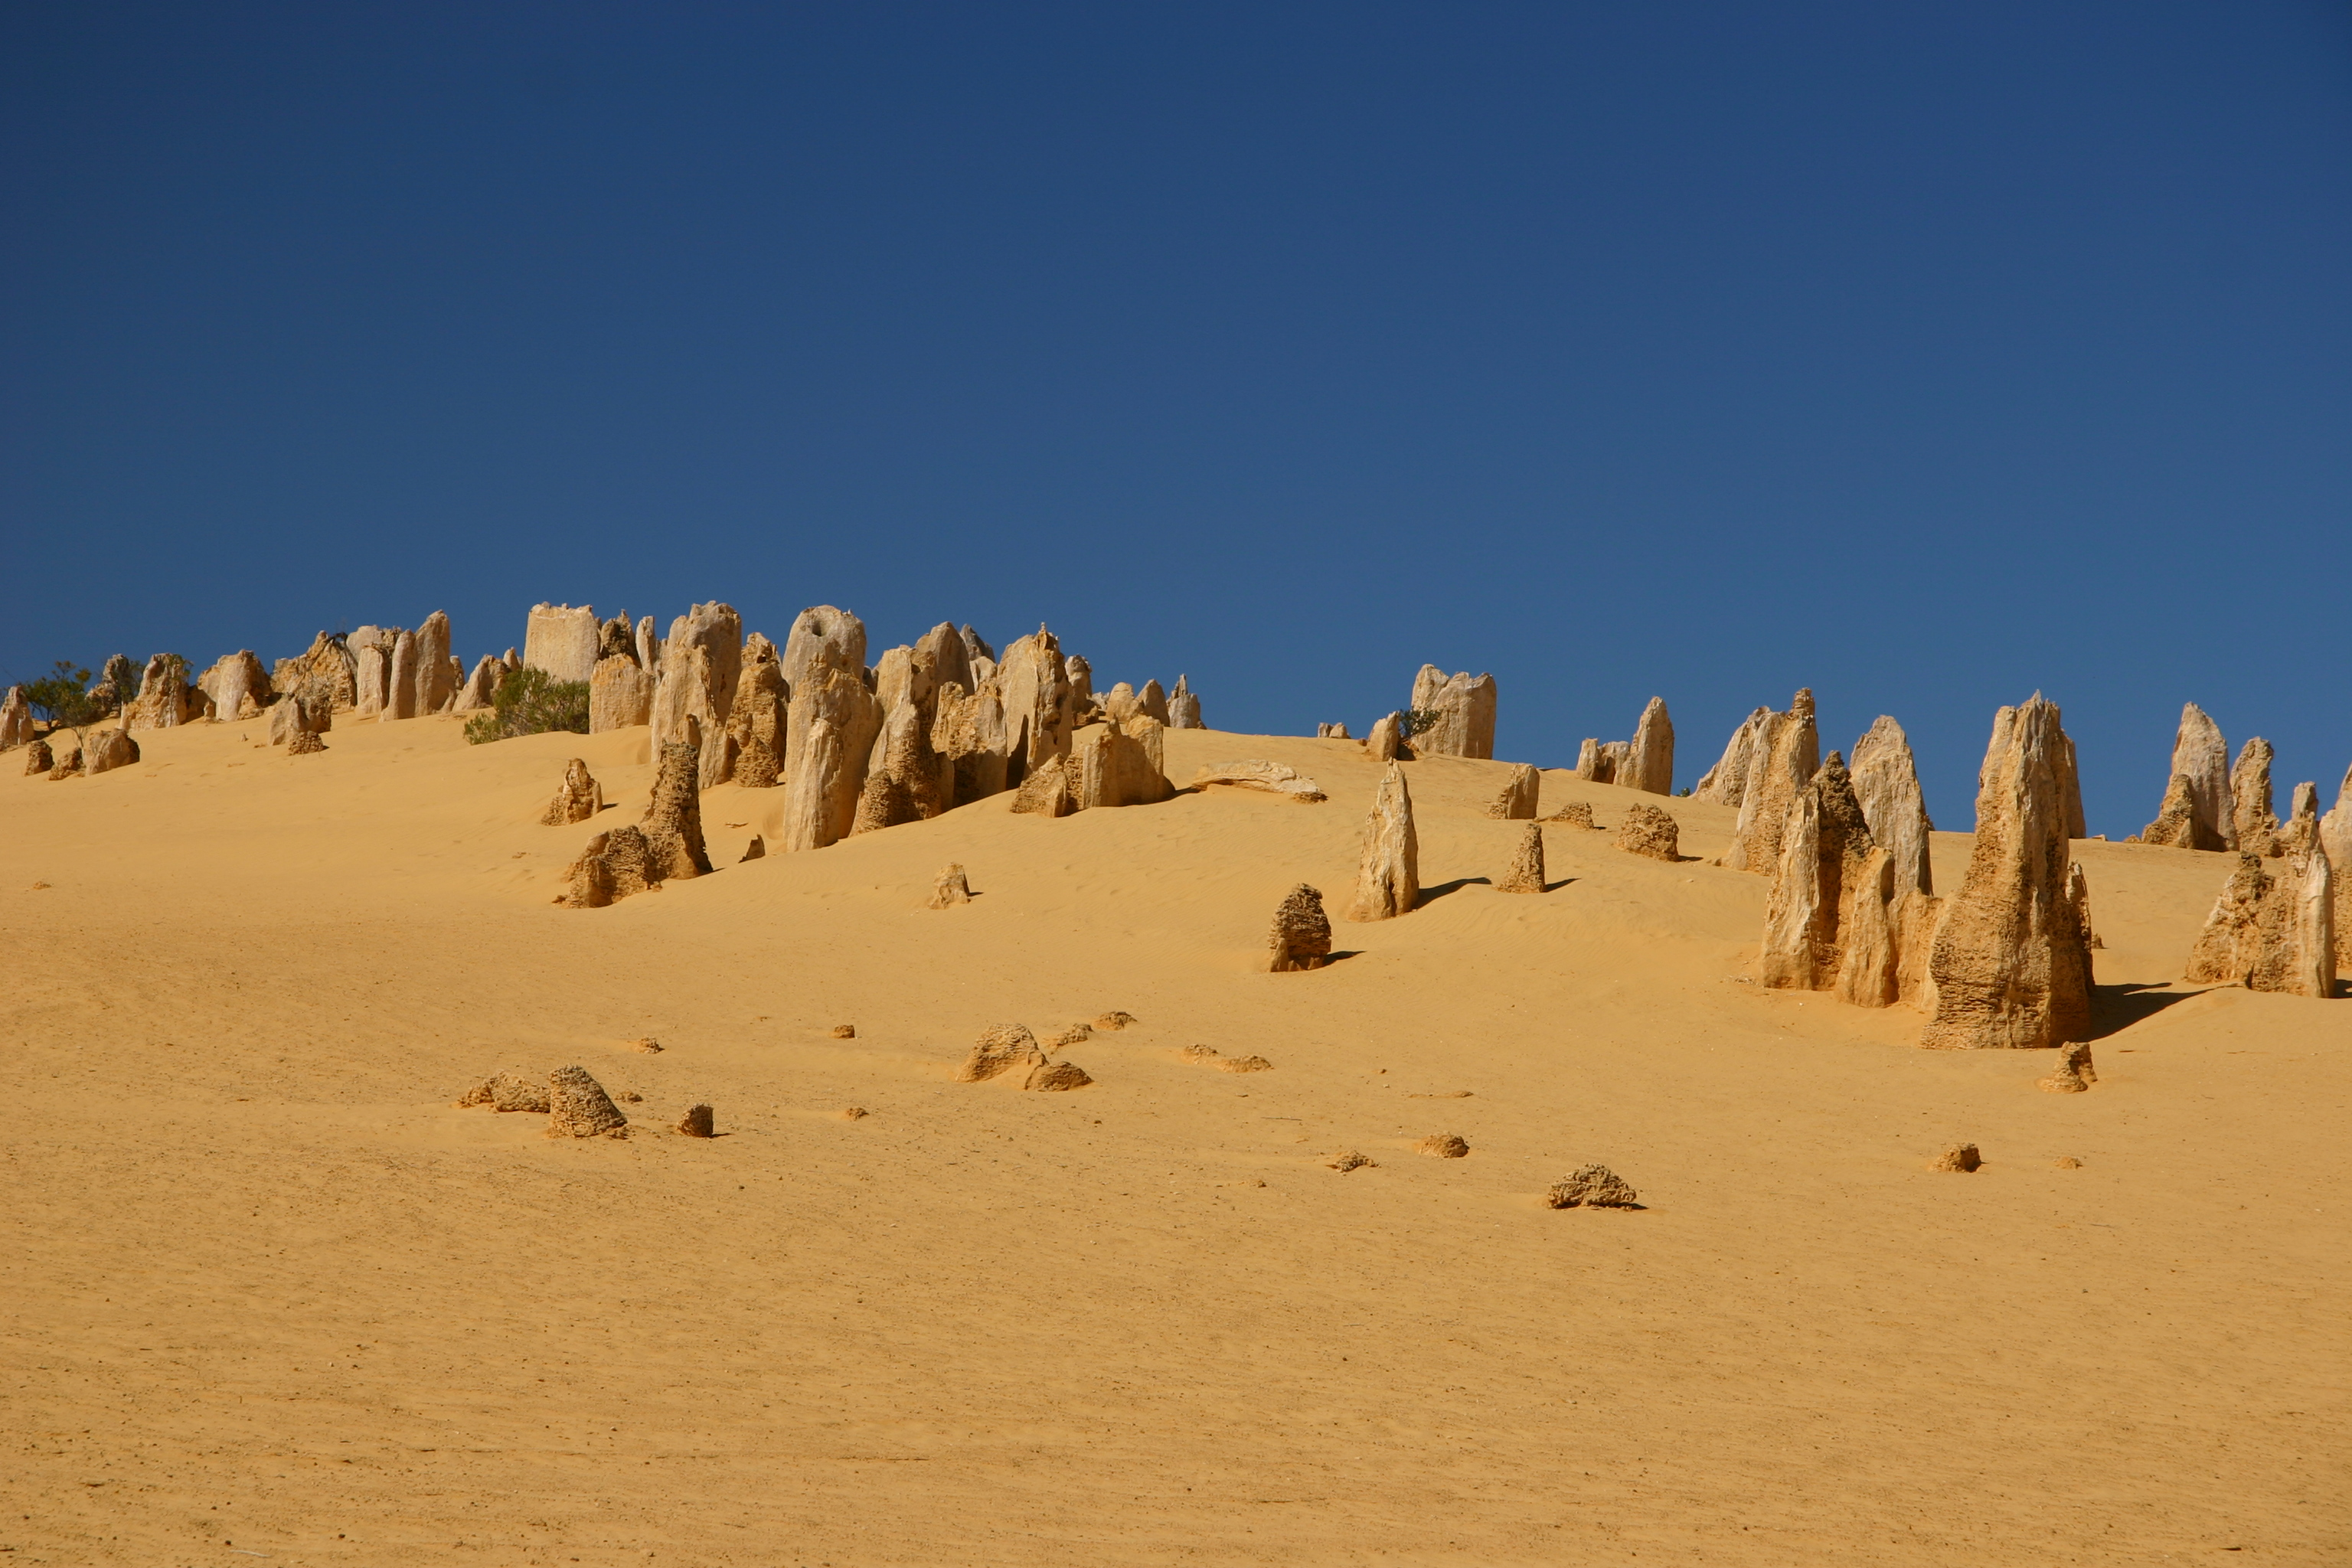 Pinnacles Desert, Nambung National Park, Western Australia